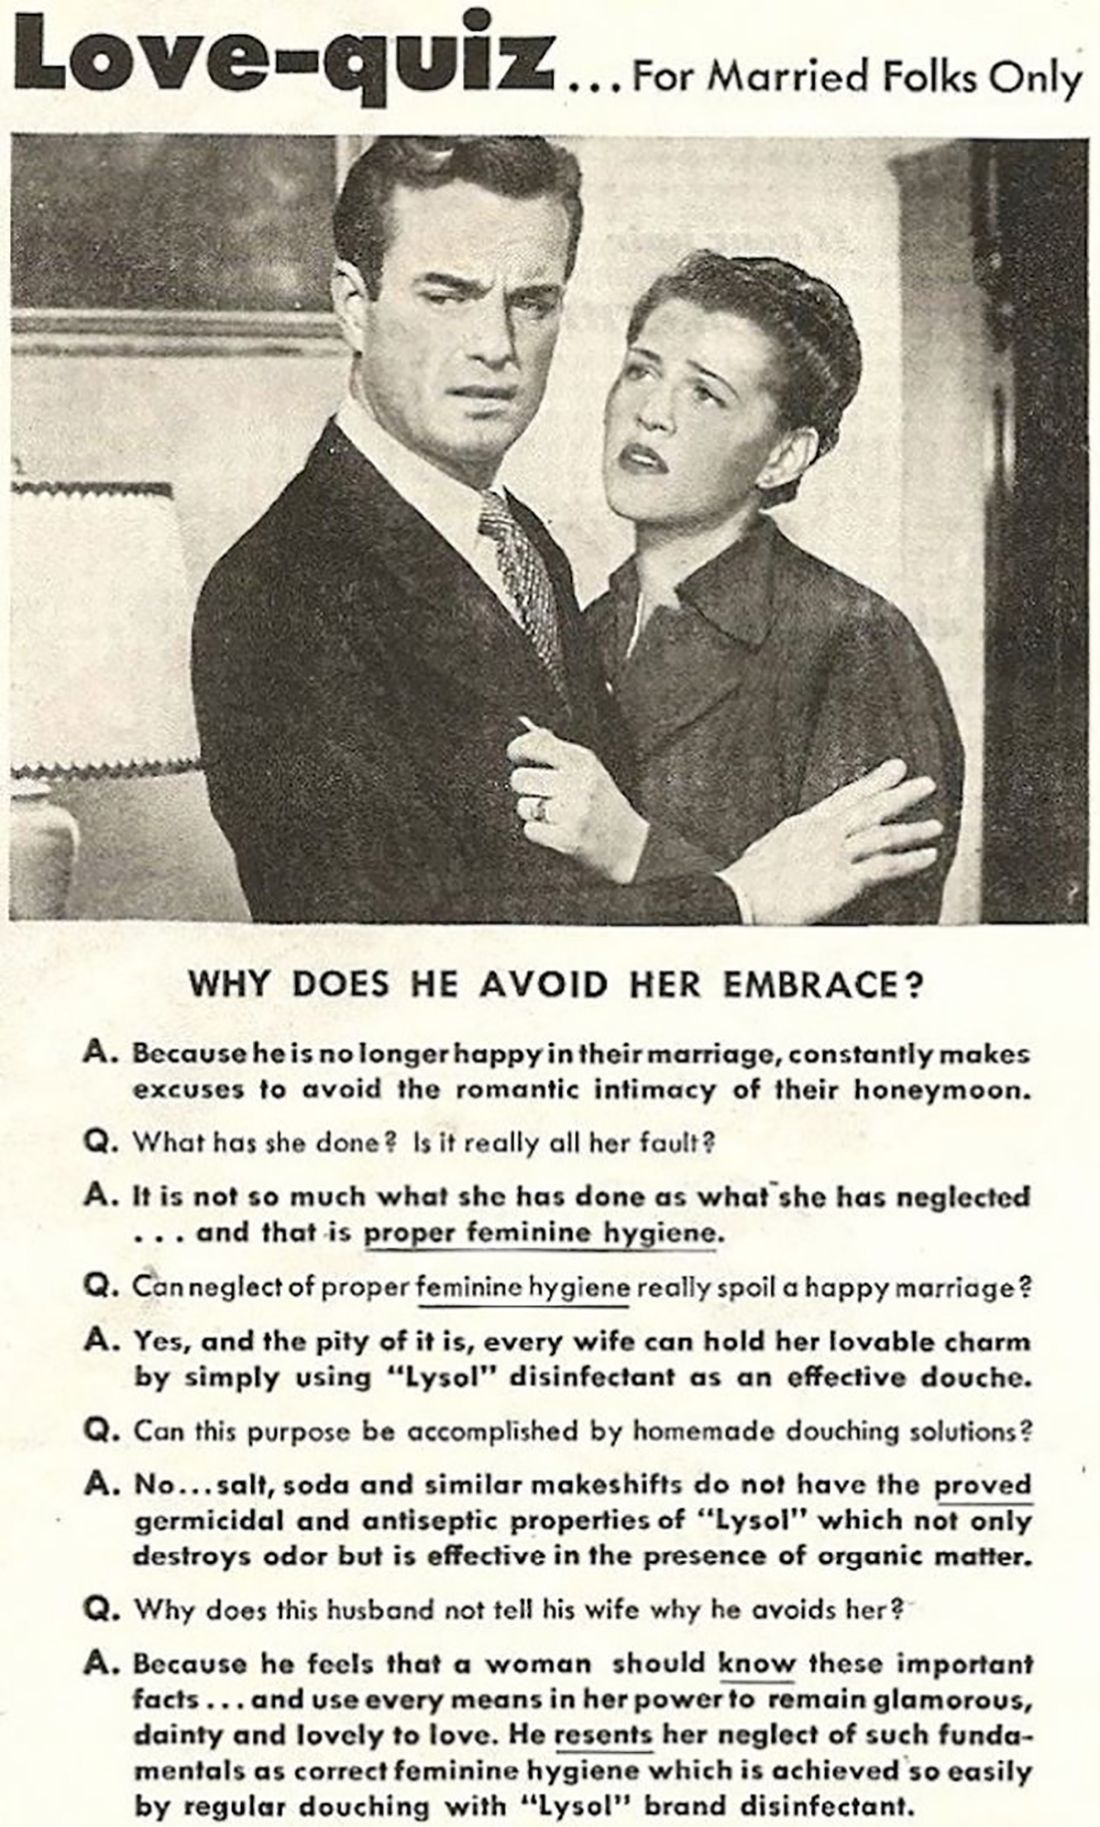 vintage dating advice These tips will help you narrow dating down or give you an idea of what to look for these are tips that i picked up along the way handling a lot of vintage clothing.